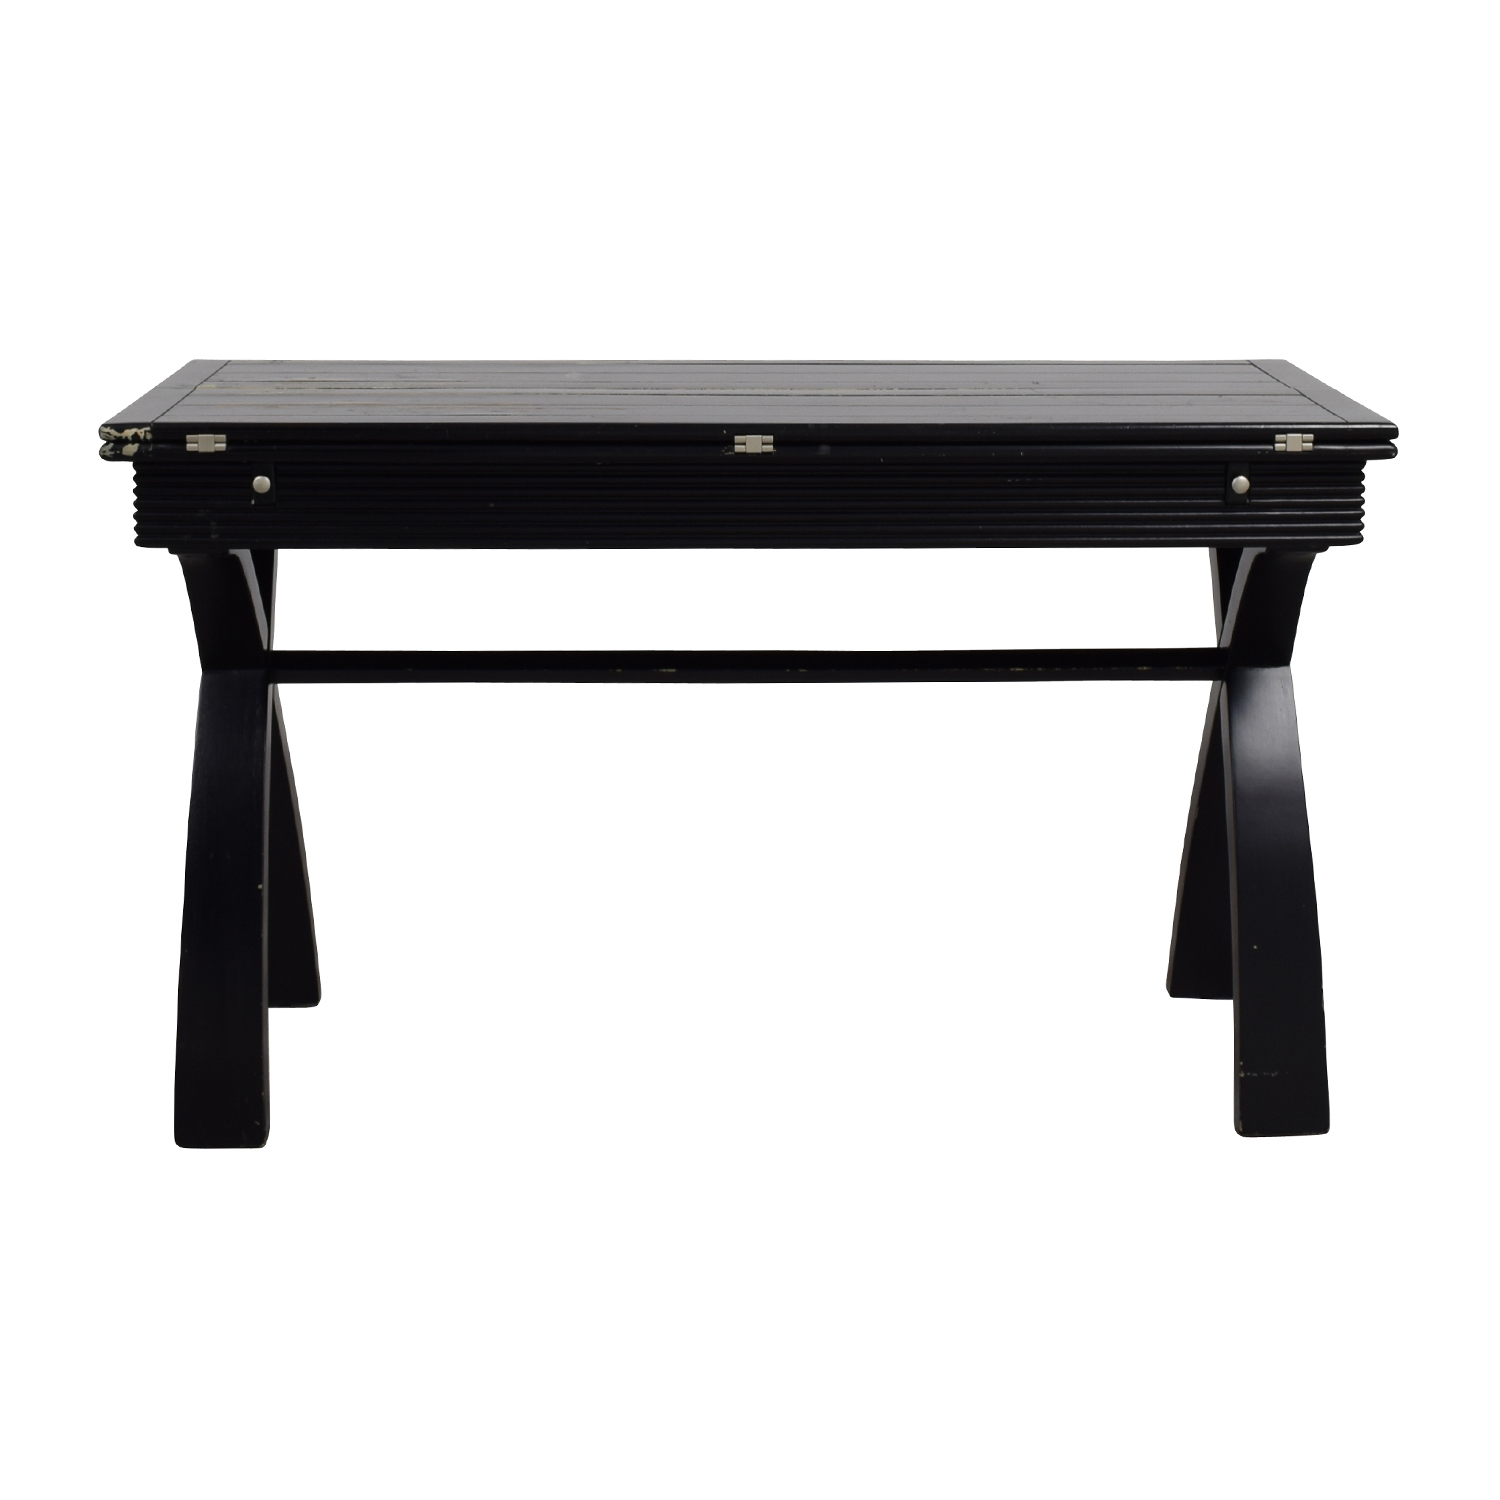 Rustic Black Extendable Desk Table